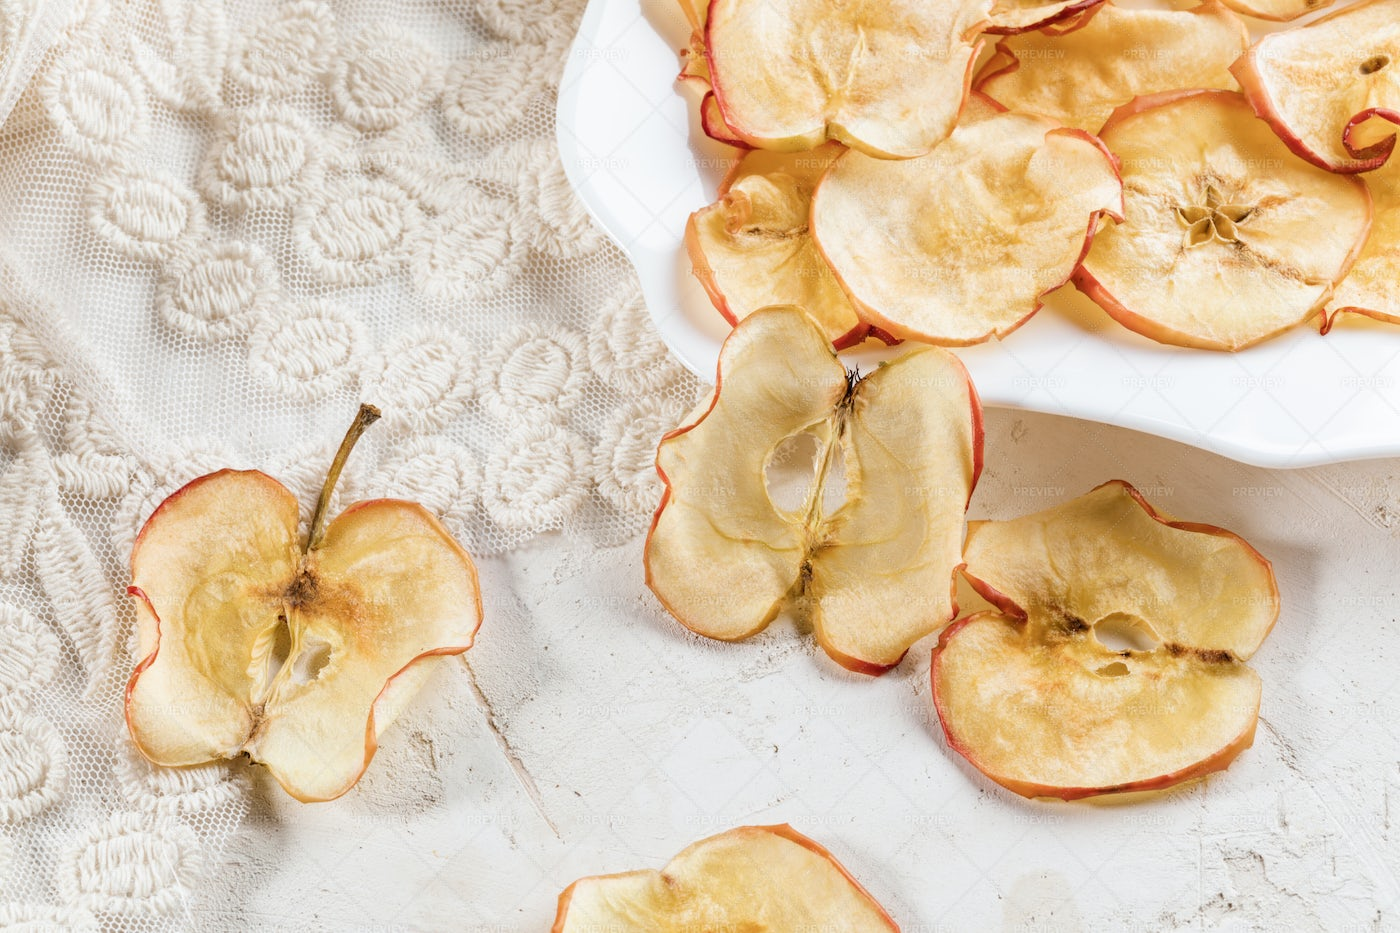 Apple Chips On White.: Stock Photos